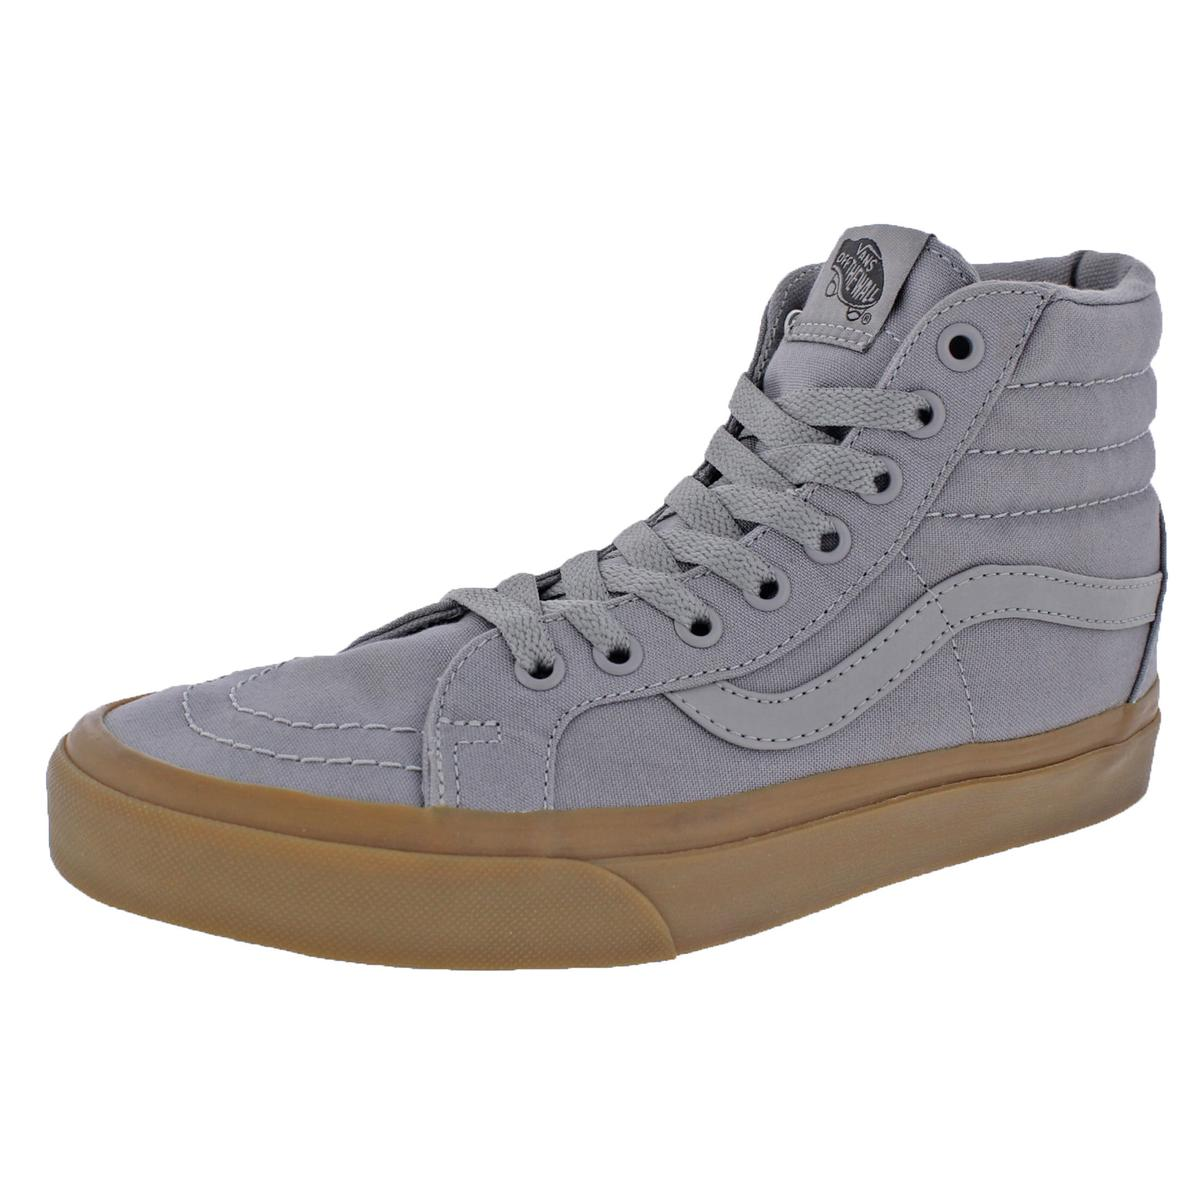 f7fa3fe6af Details about Vans Womens SK8-Hi Reissue Gray Skate Shoes Sneakers 8.5  Medium (B